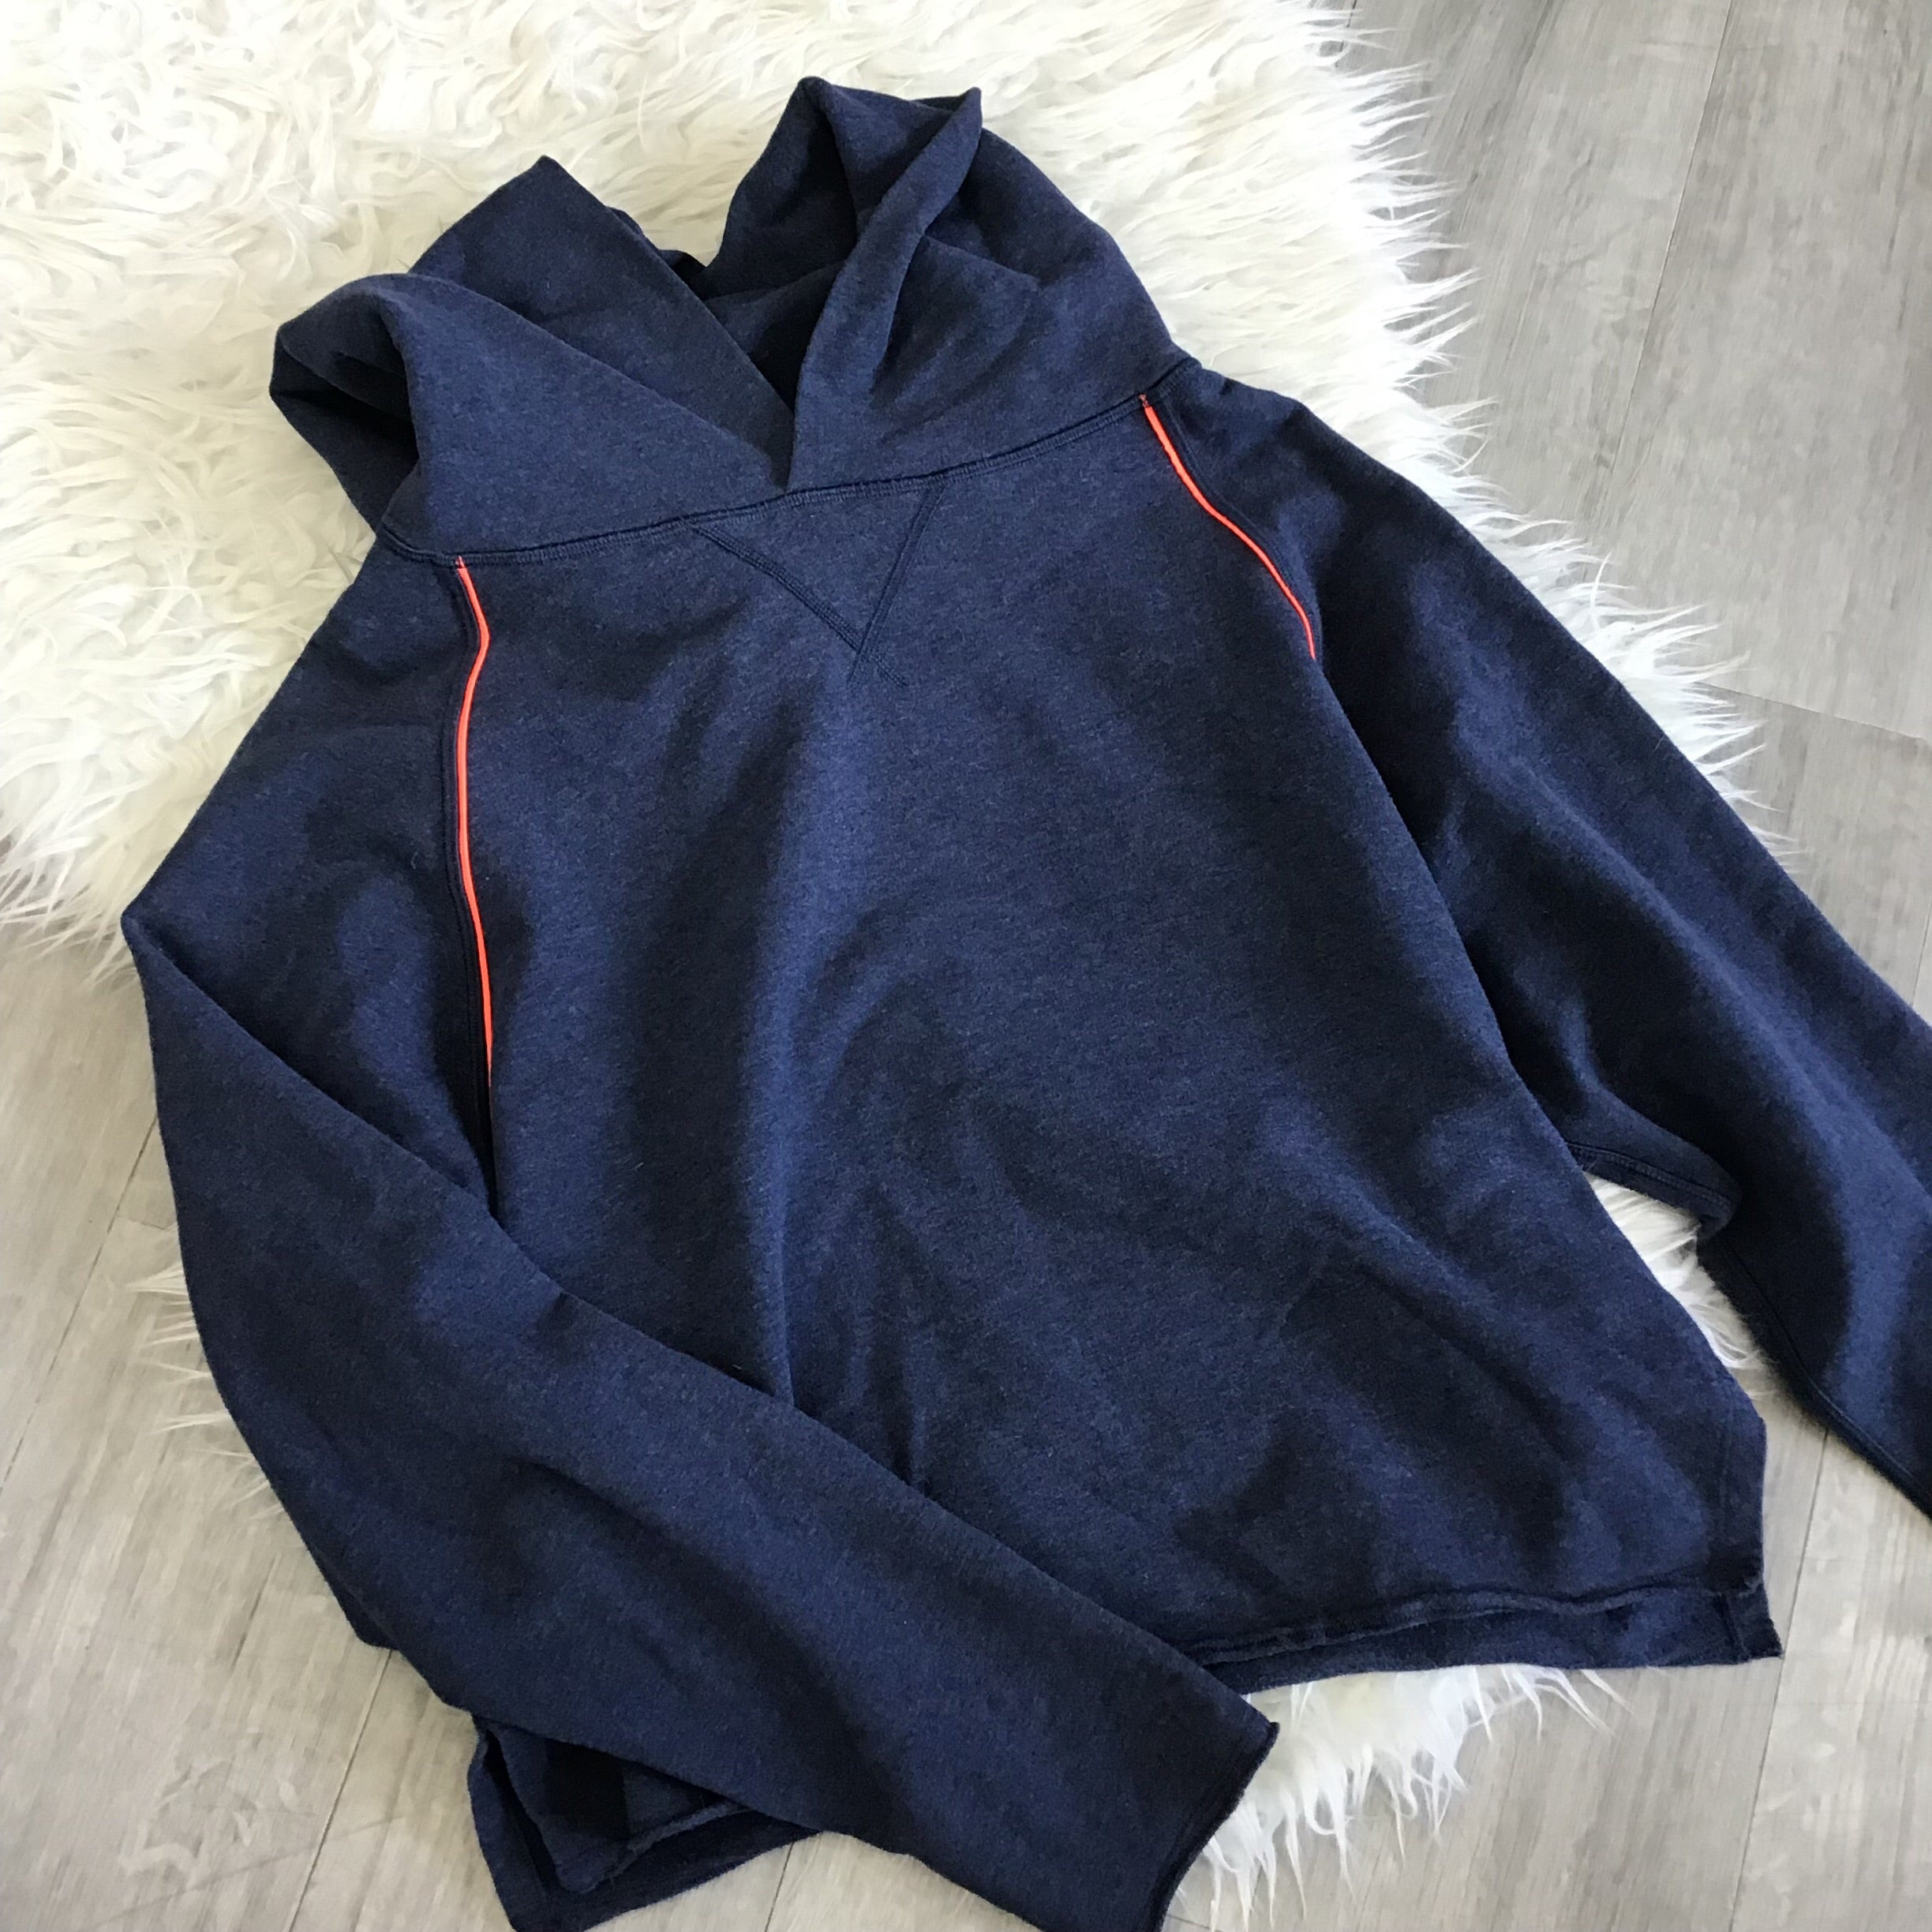 Lululemon - Medium